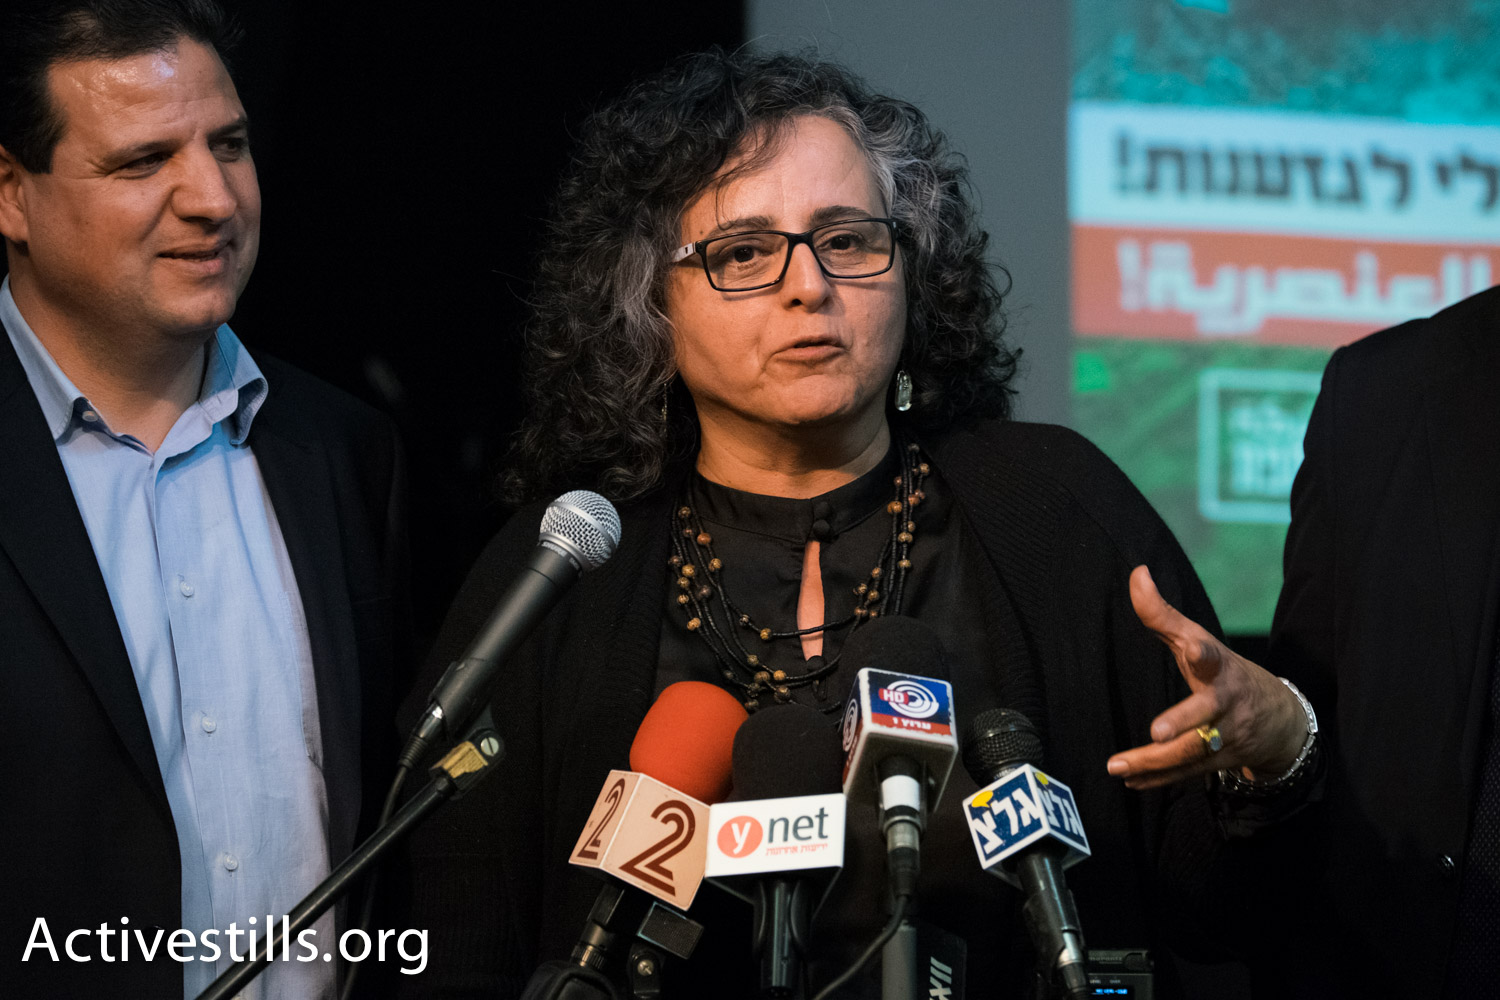 Aida Touma-Sliman and Ayman Odeh speak at the Hebrew launch event for the Joint List, February 11. (photo: Activestills.org)